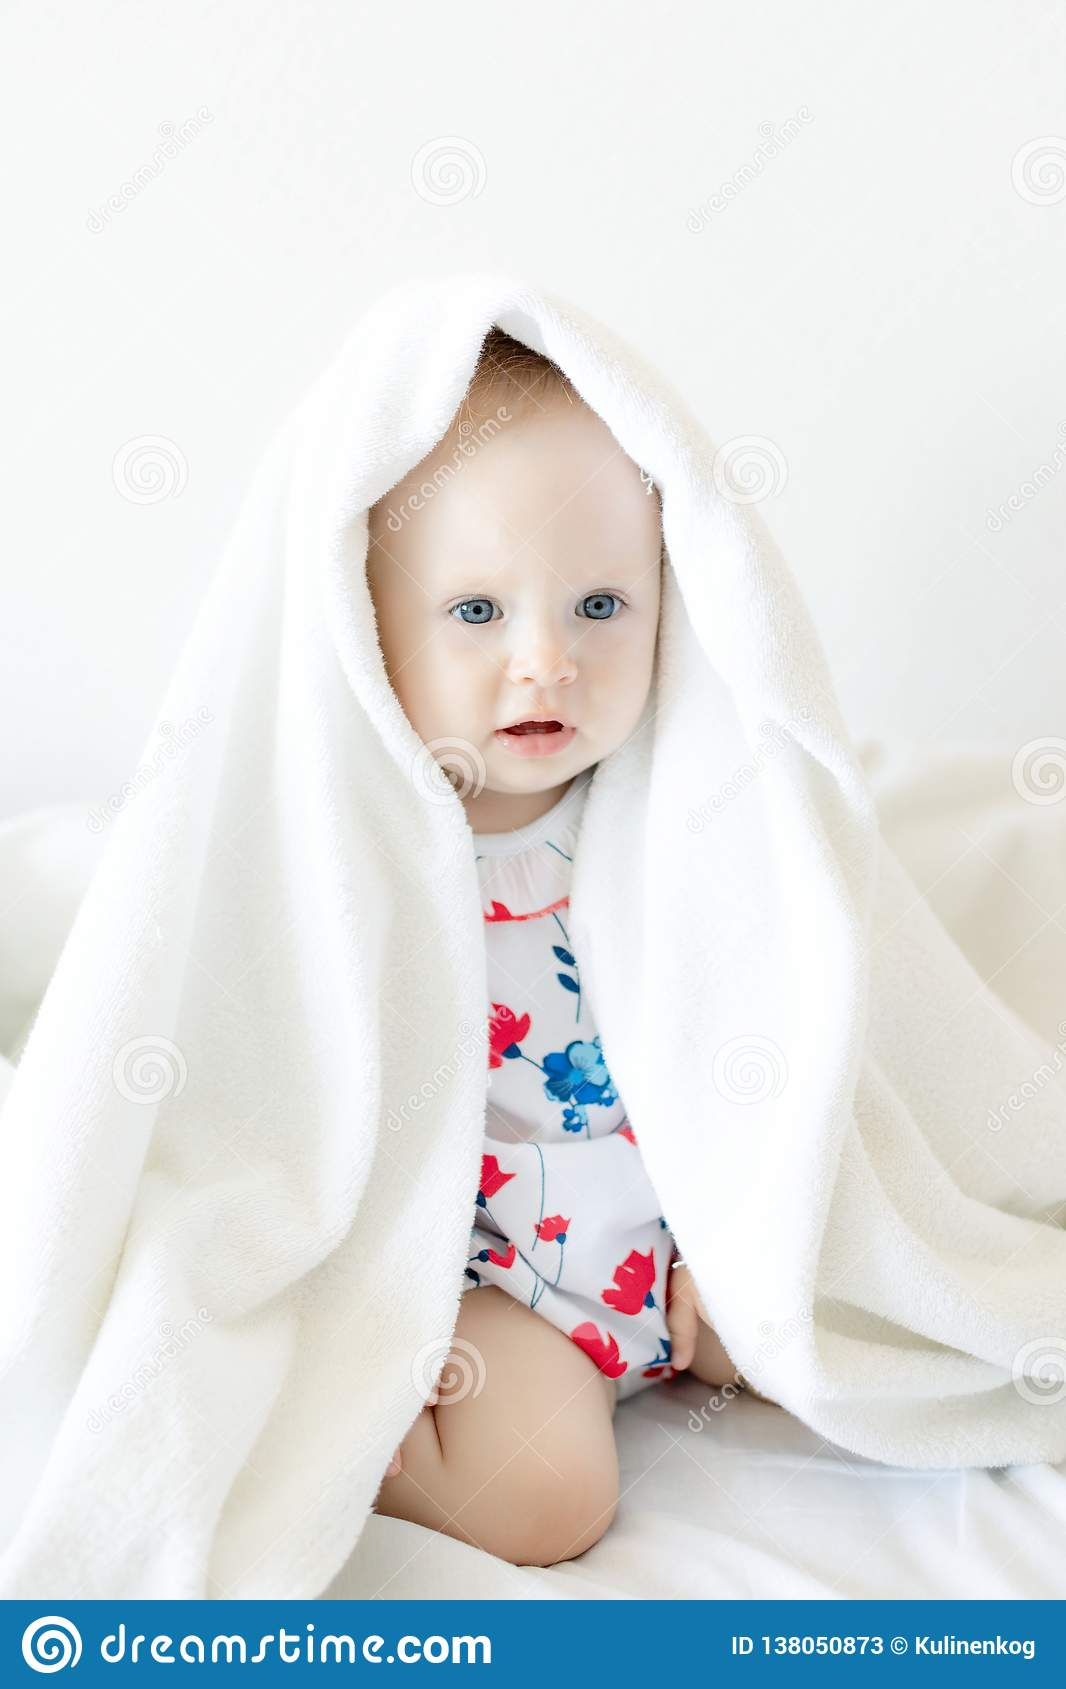 Beautiful baby kid Peeps out from under the sheets and fervently plays posing for the camera